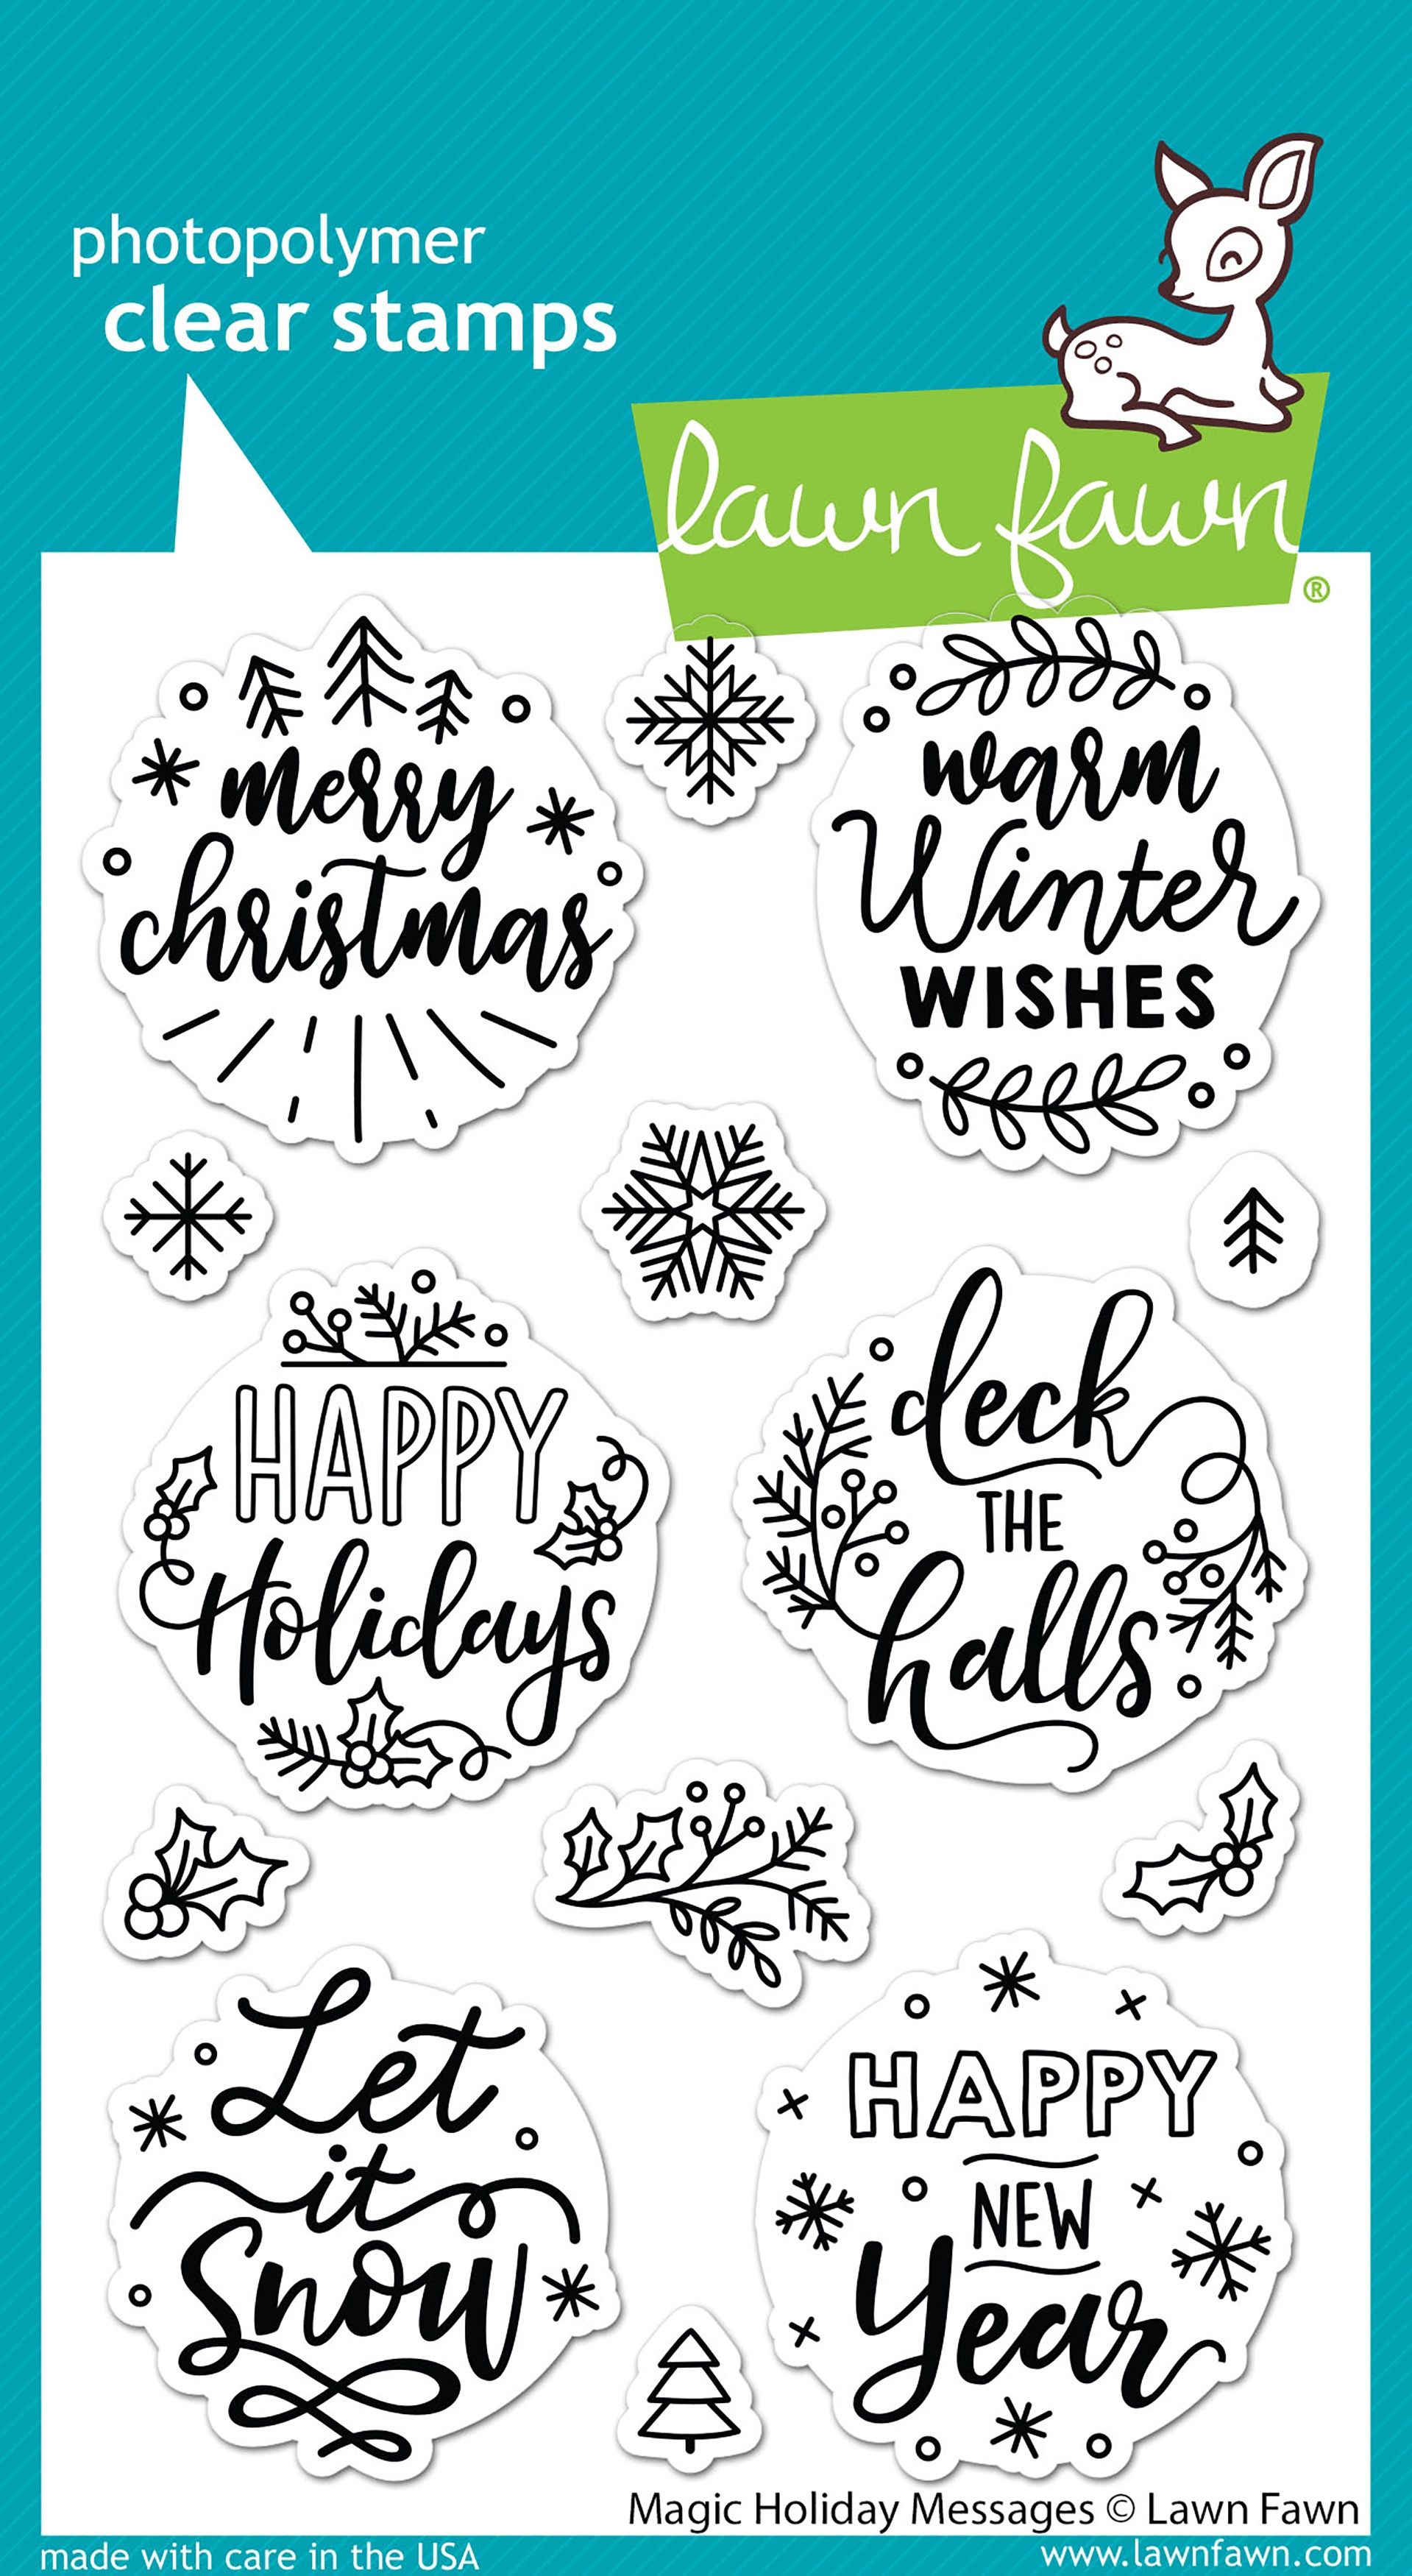 Lawn Fawn Clear Stamps 4X6-Magic Holiday Messages